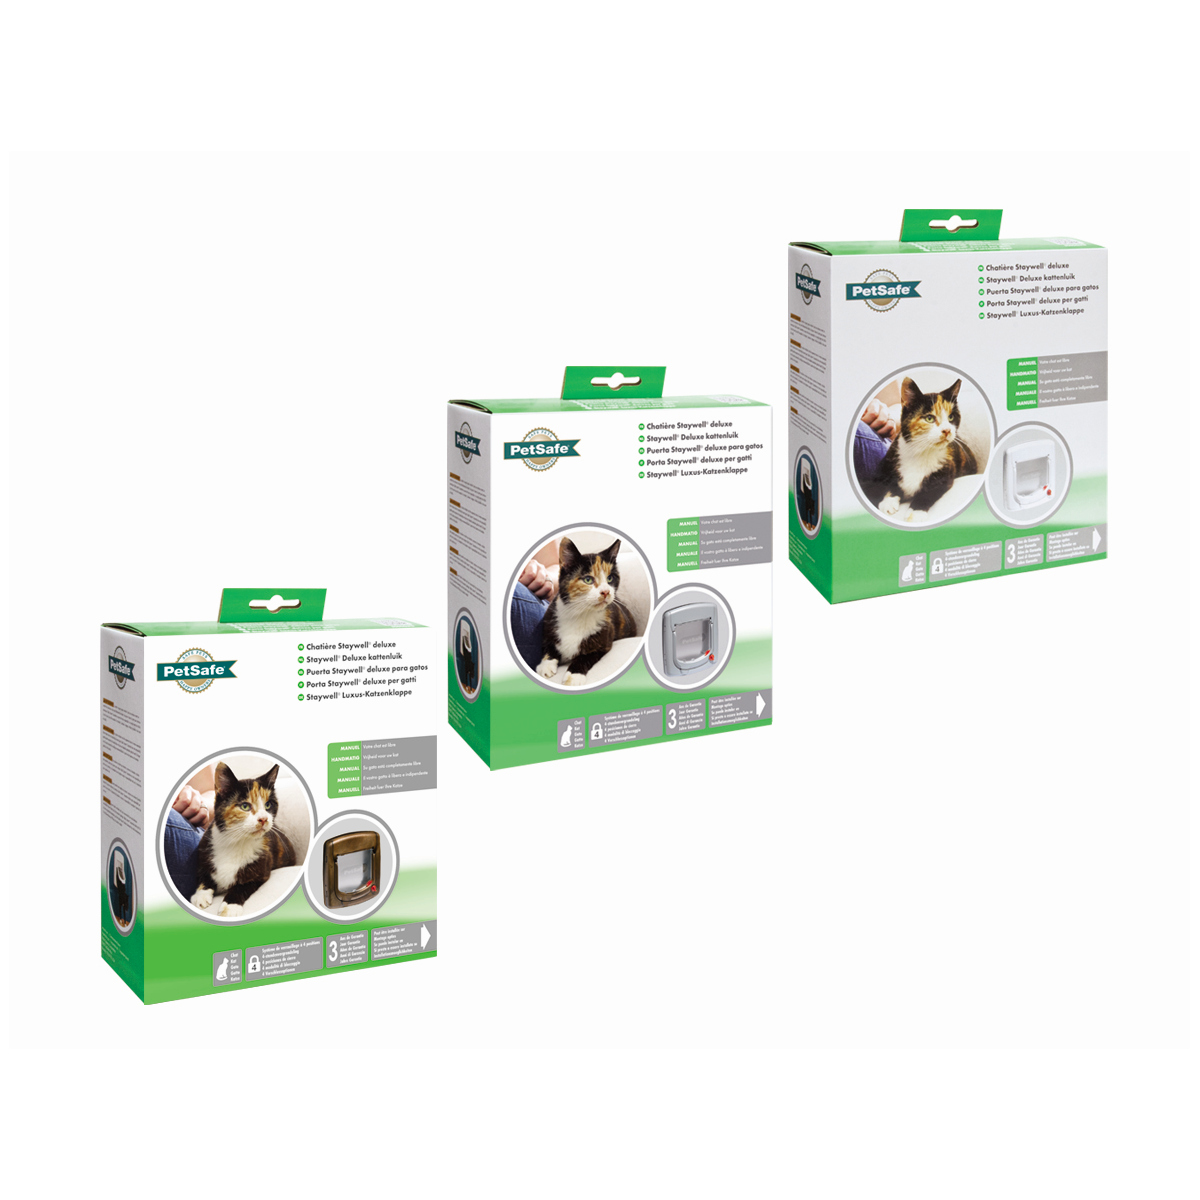 PS STAYWELL DELUXE KATTENL.340 00001